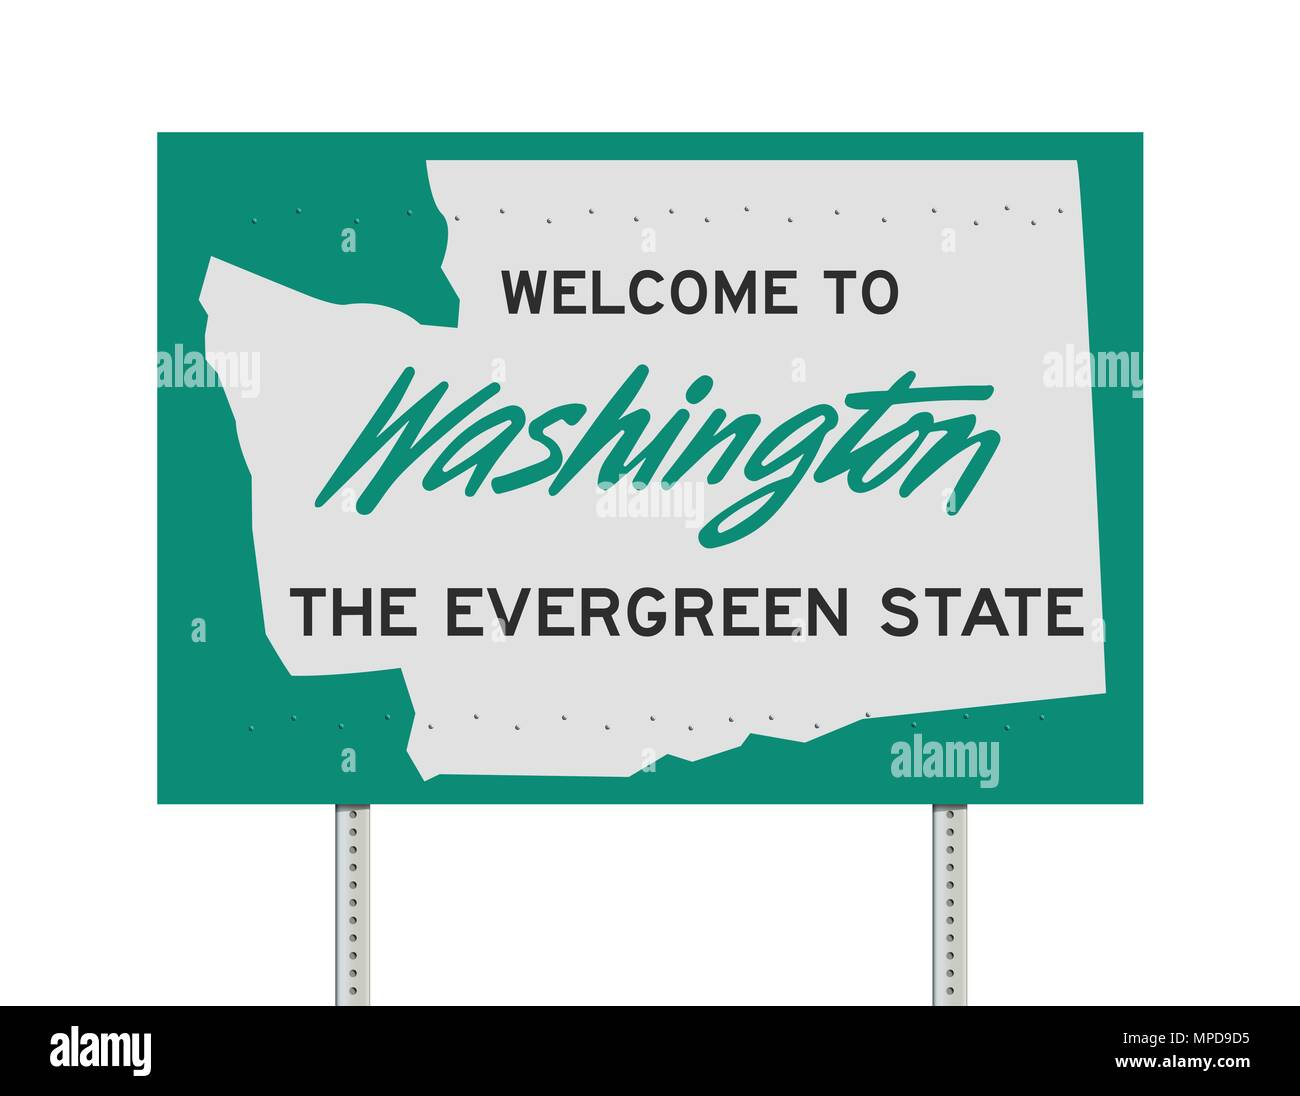 The Evergreen State >> Vector Illustration Of The Welcome To Washington The